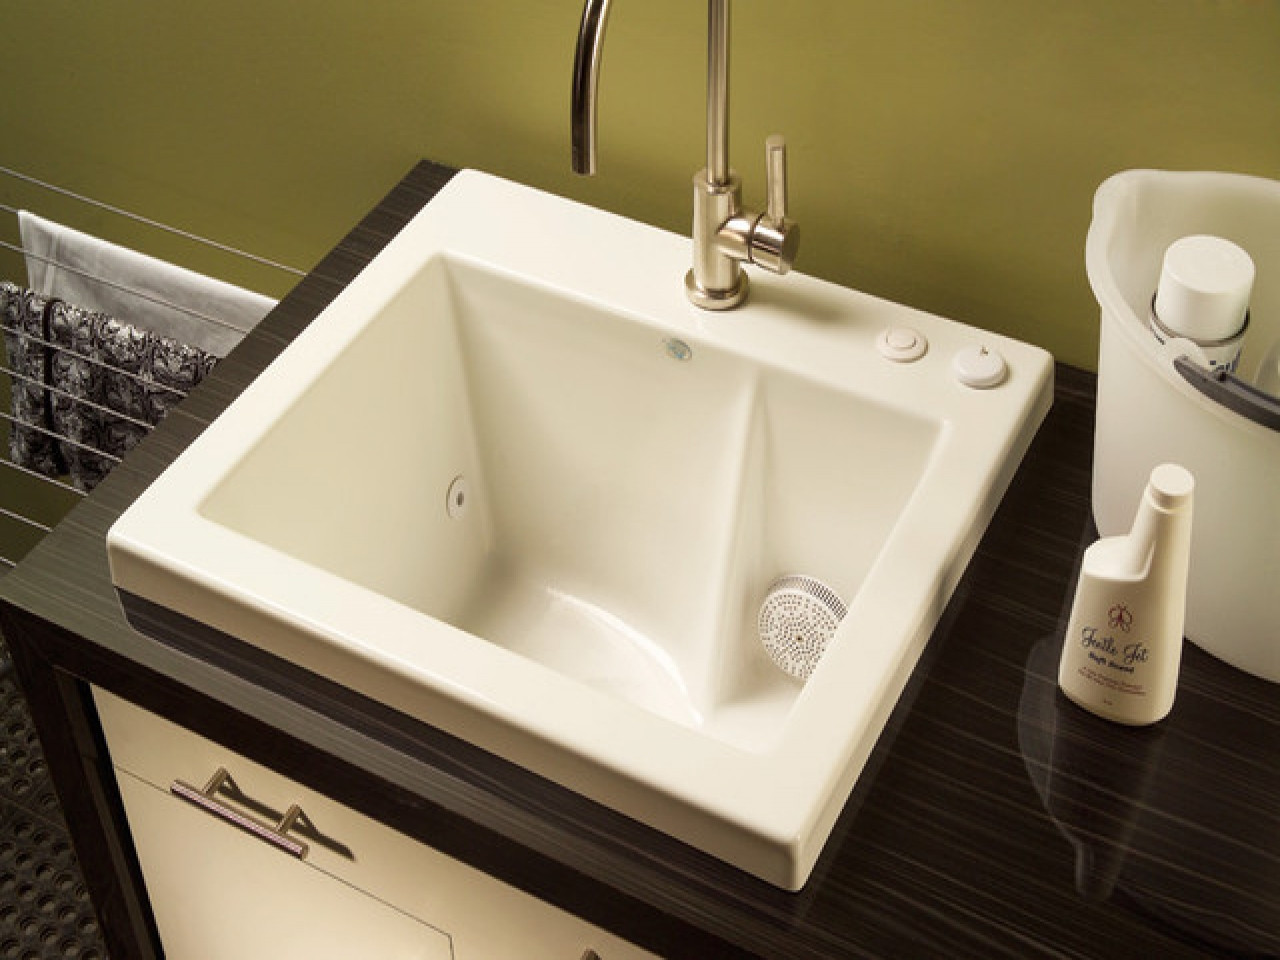 Best ideas about Laundry Room Utility Sink . Save or Pin Laundry room utility sink cabinet laundry room sink with Now.